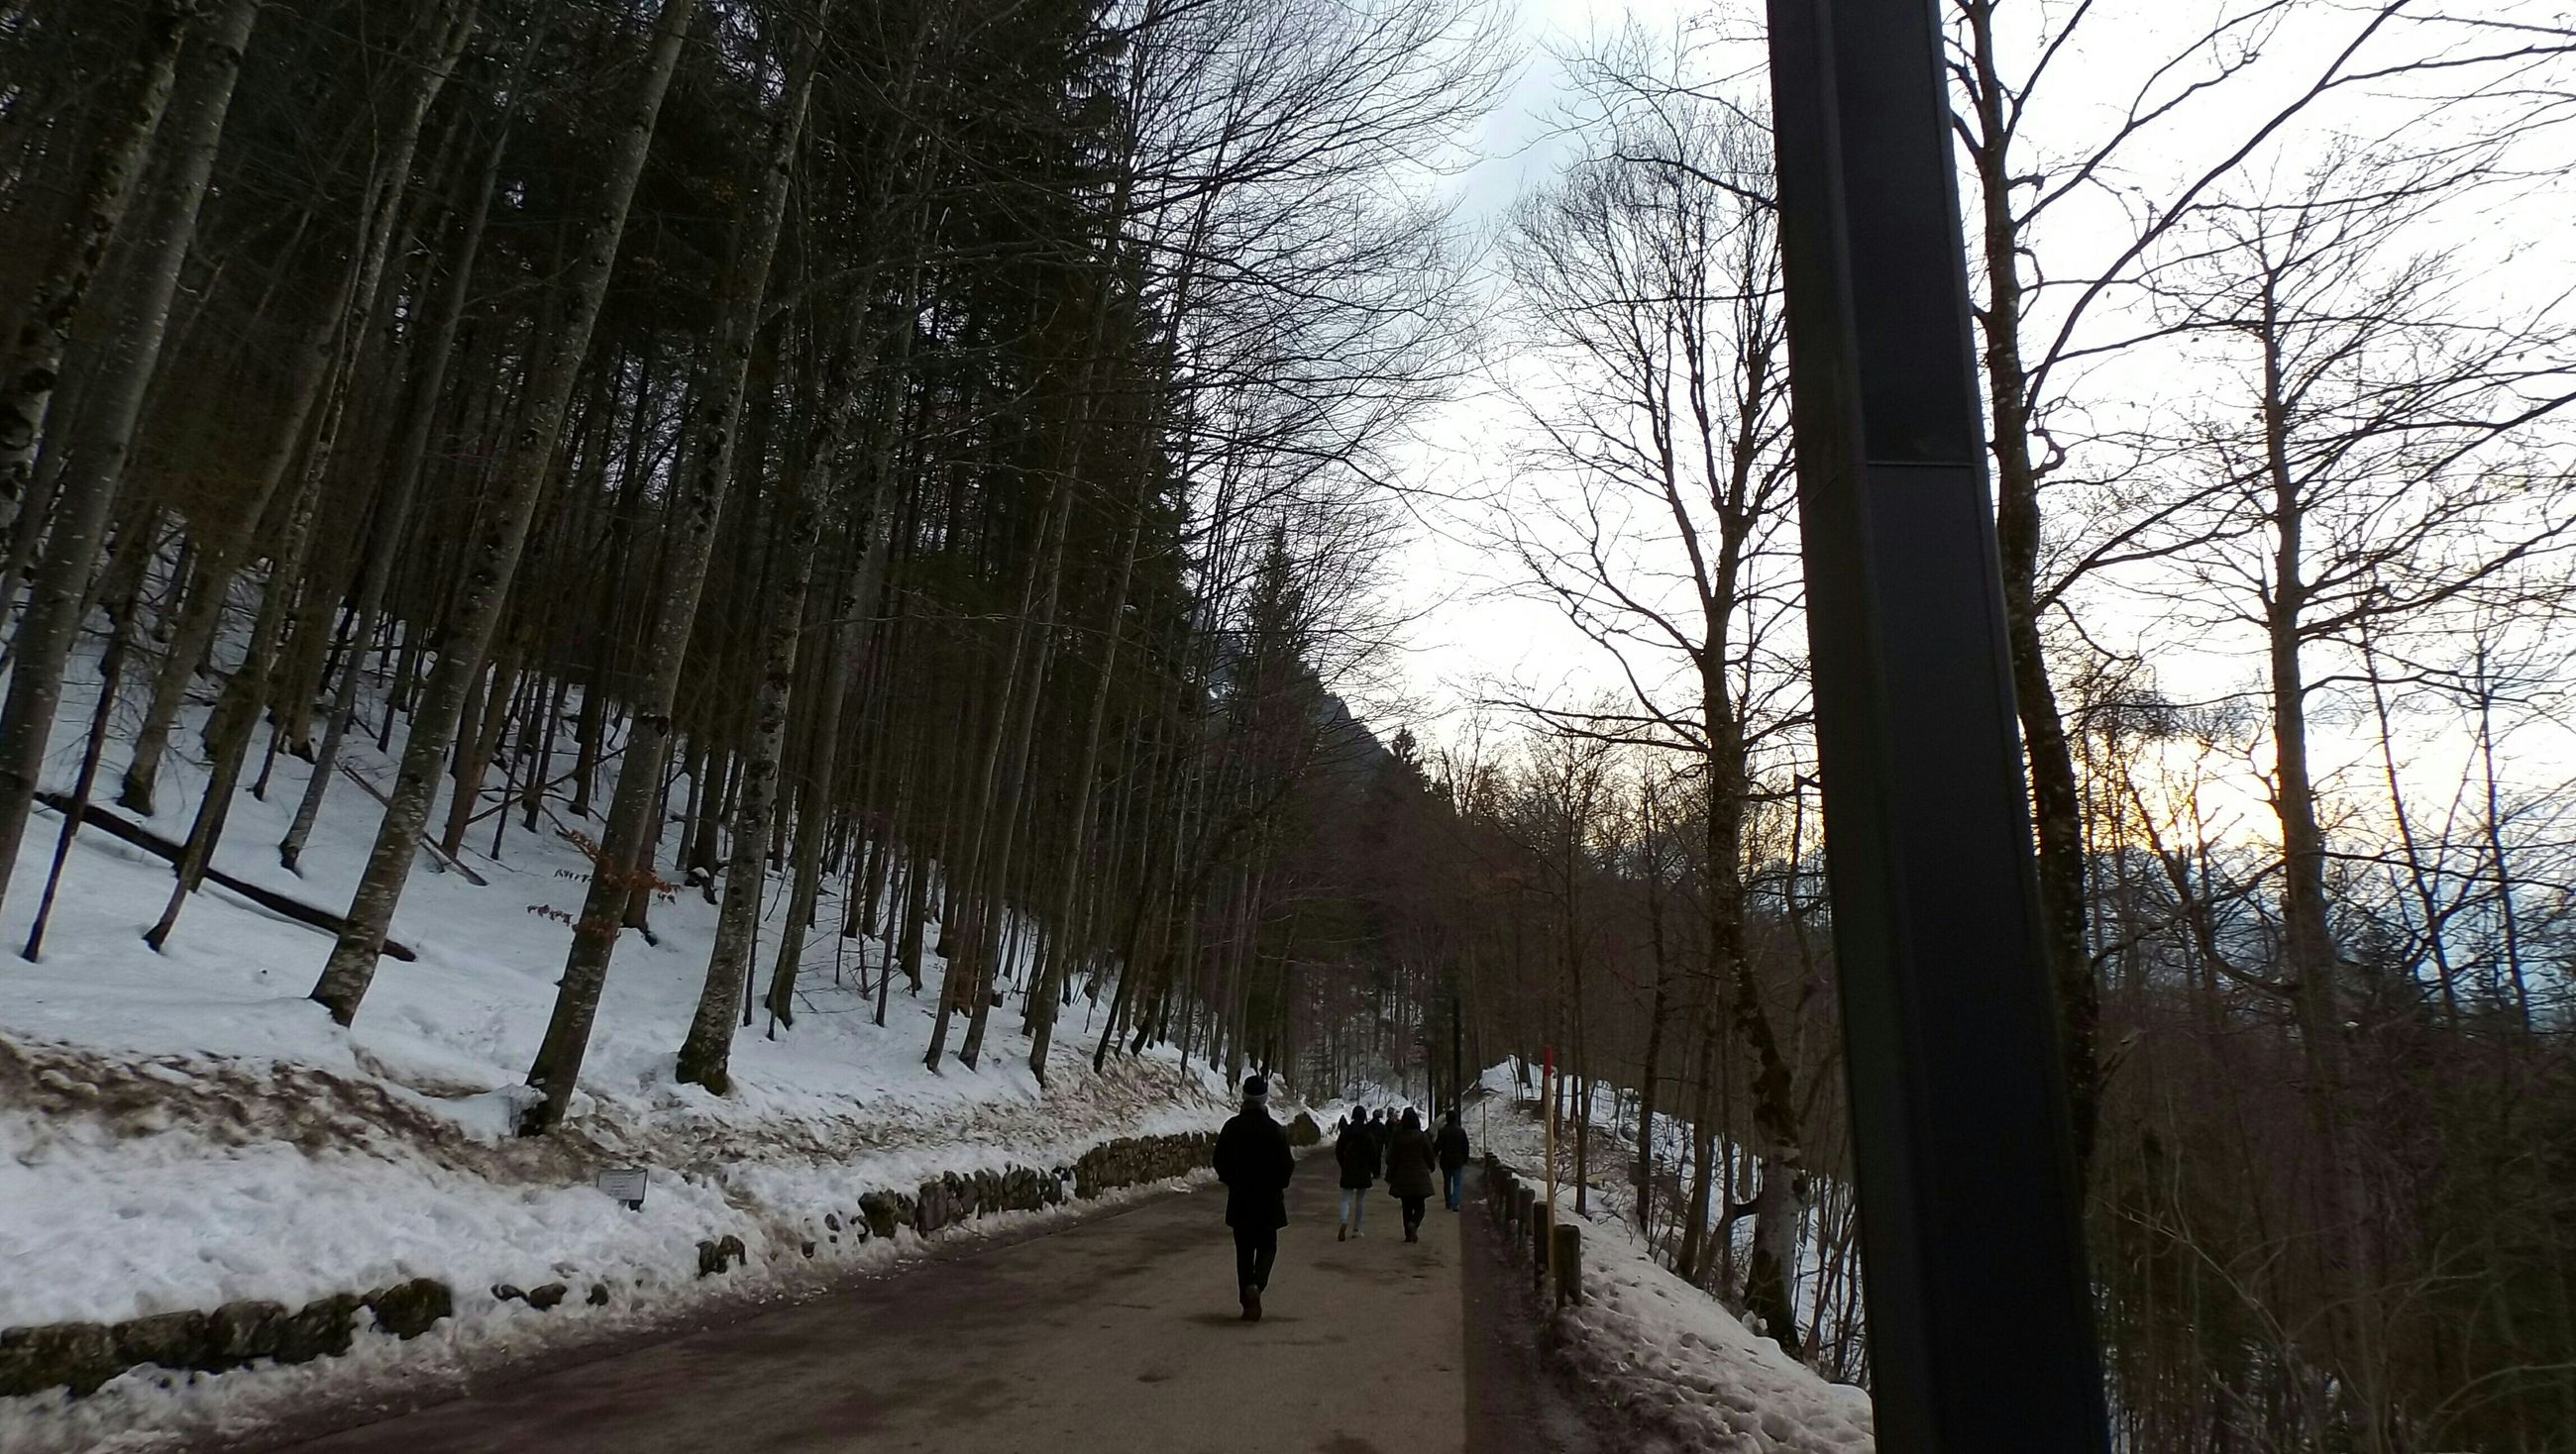 tree, winter, snow, cold temperature, walking, tree trunk, lifestyles, tranquility, season, nature, leisure activity, tranquil scene, full length, beauty in nature, rear view, men, scenics, weather, the way forward